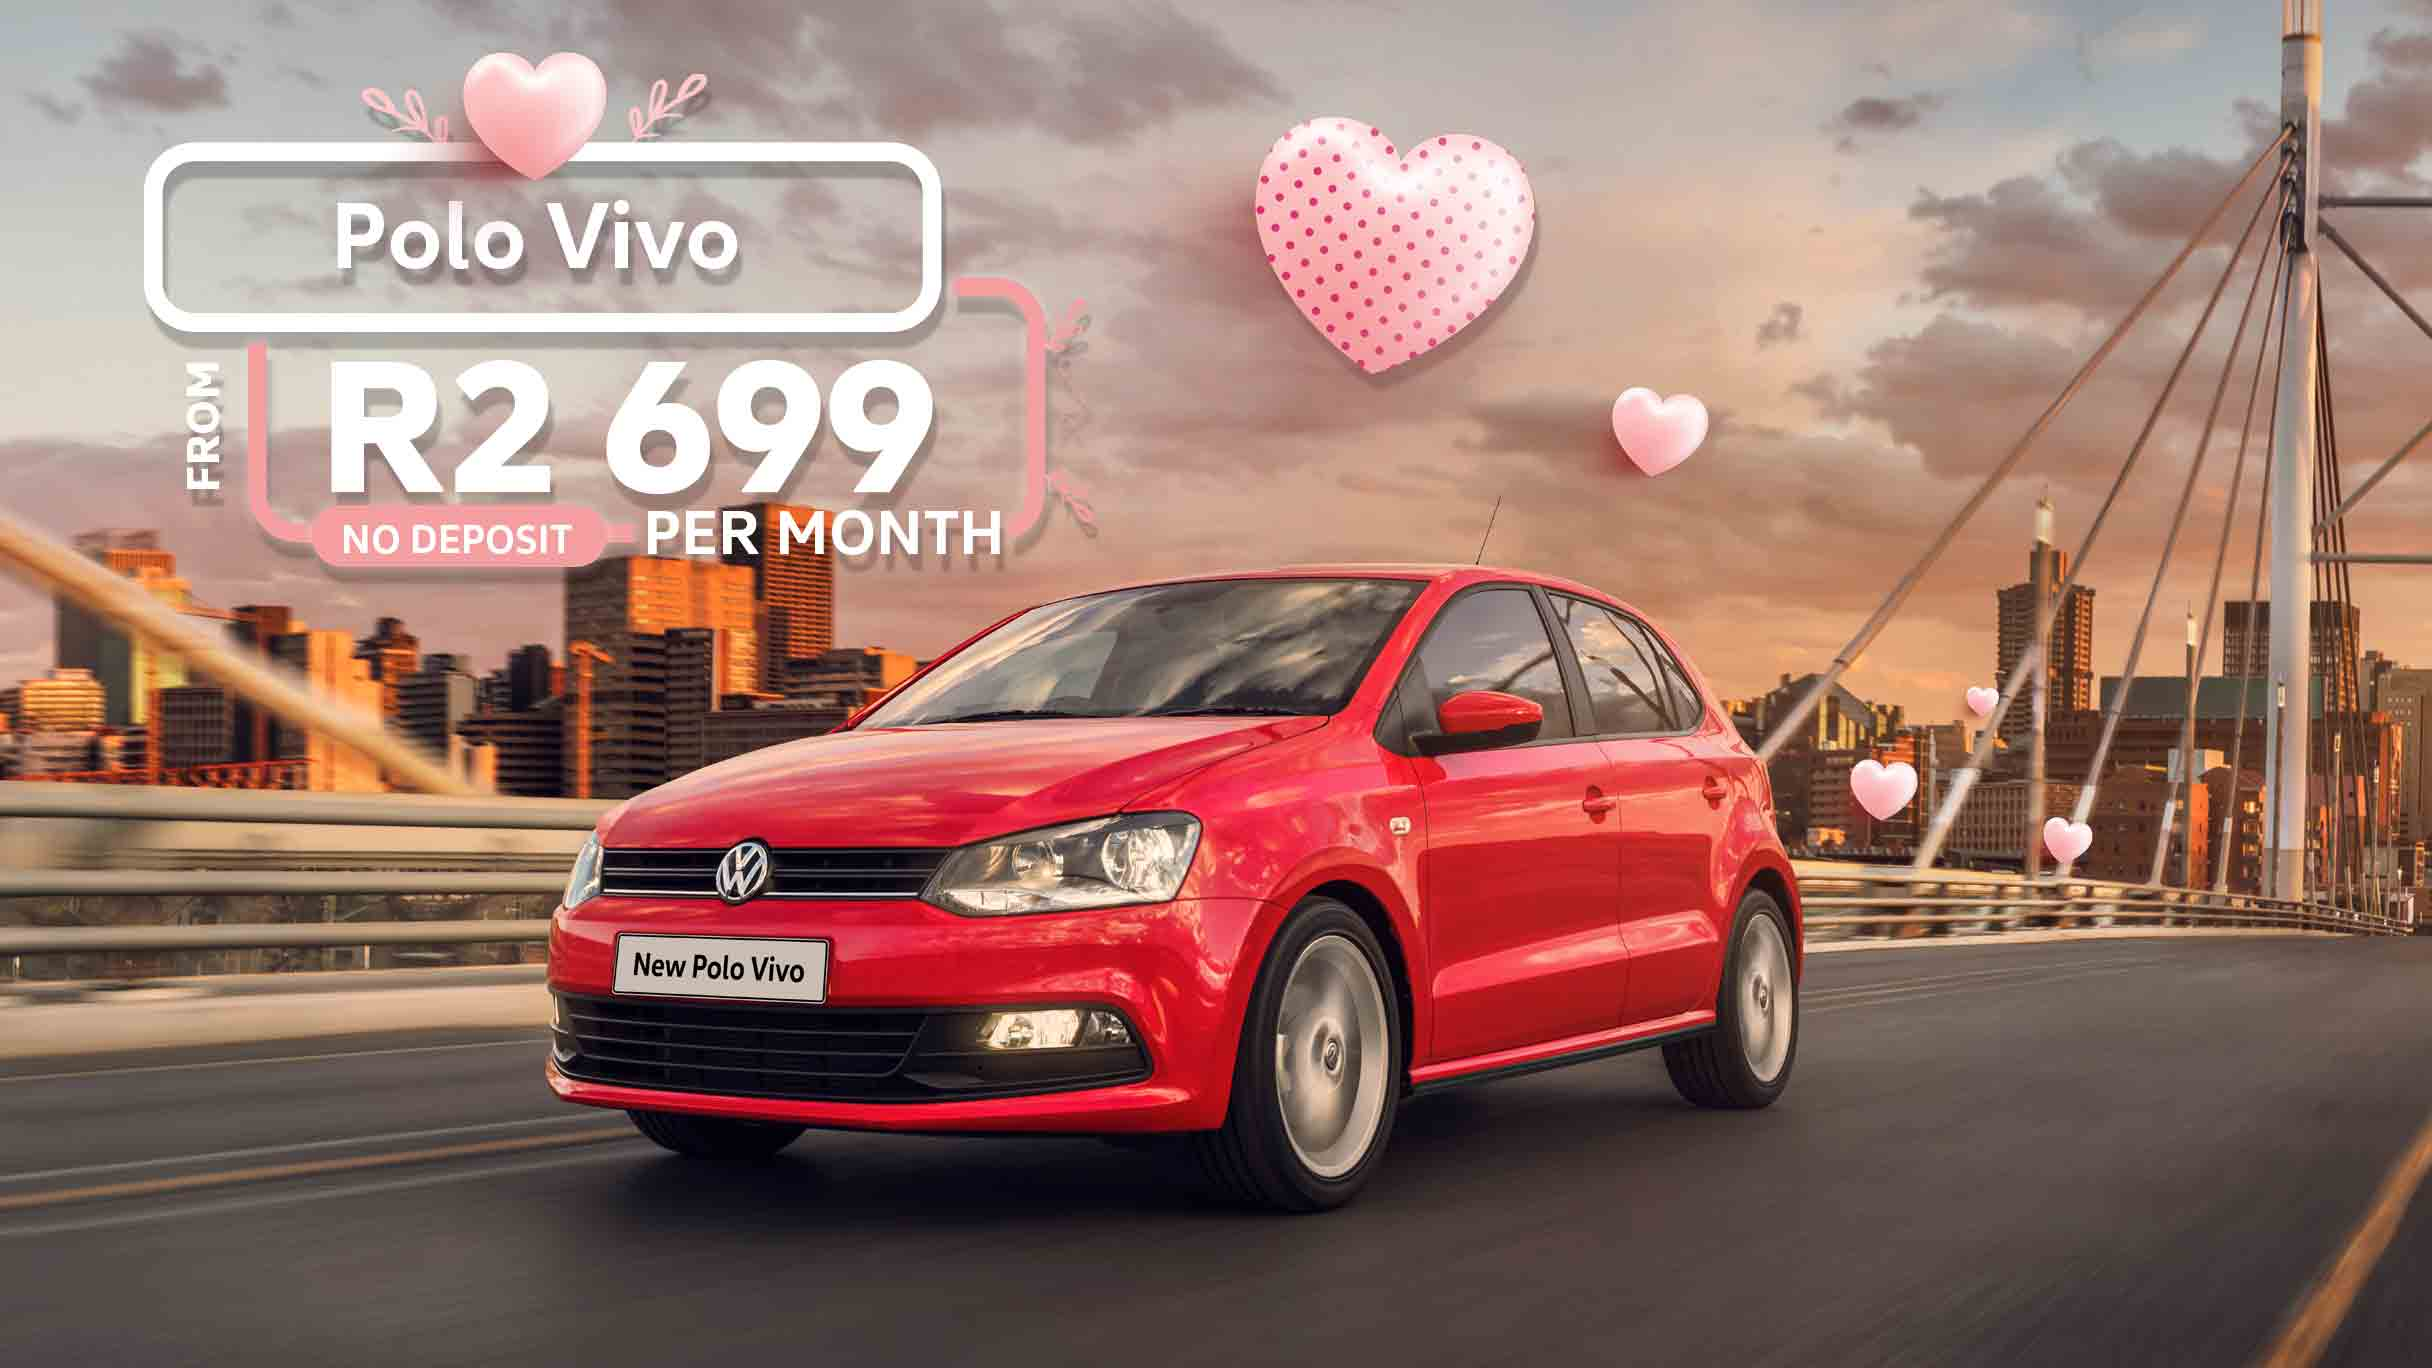 Polo Vivo special offers